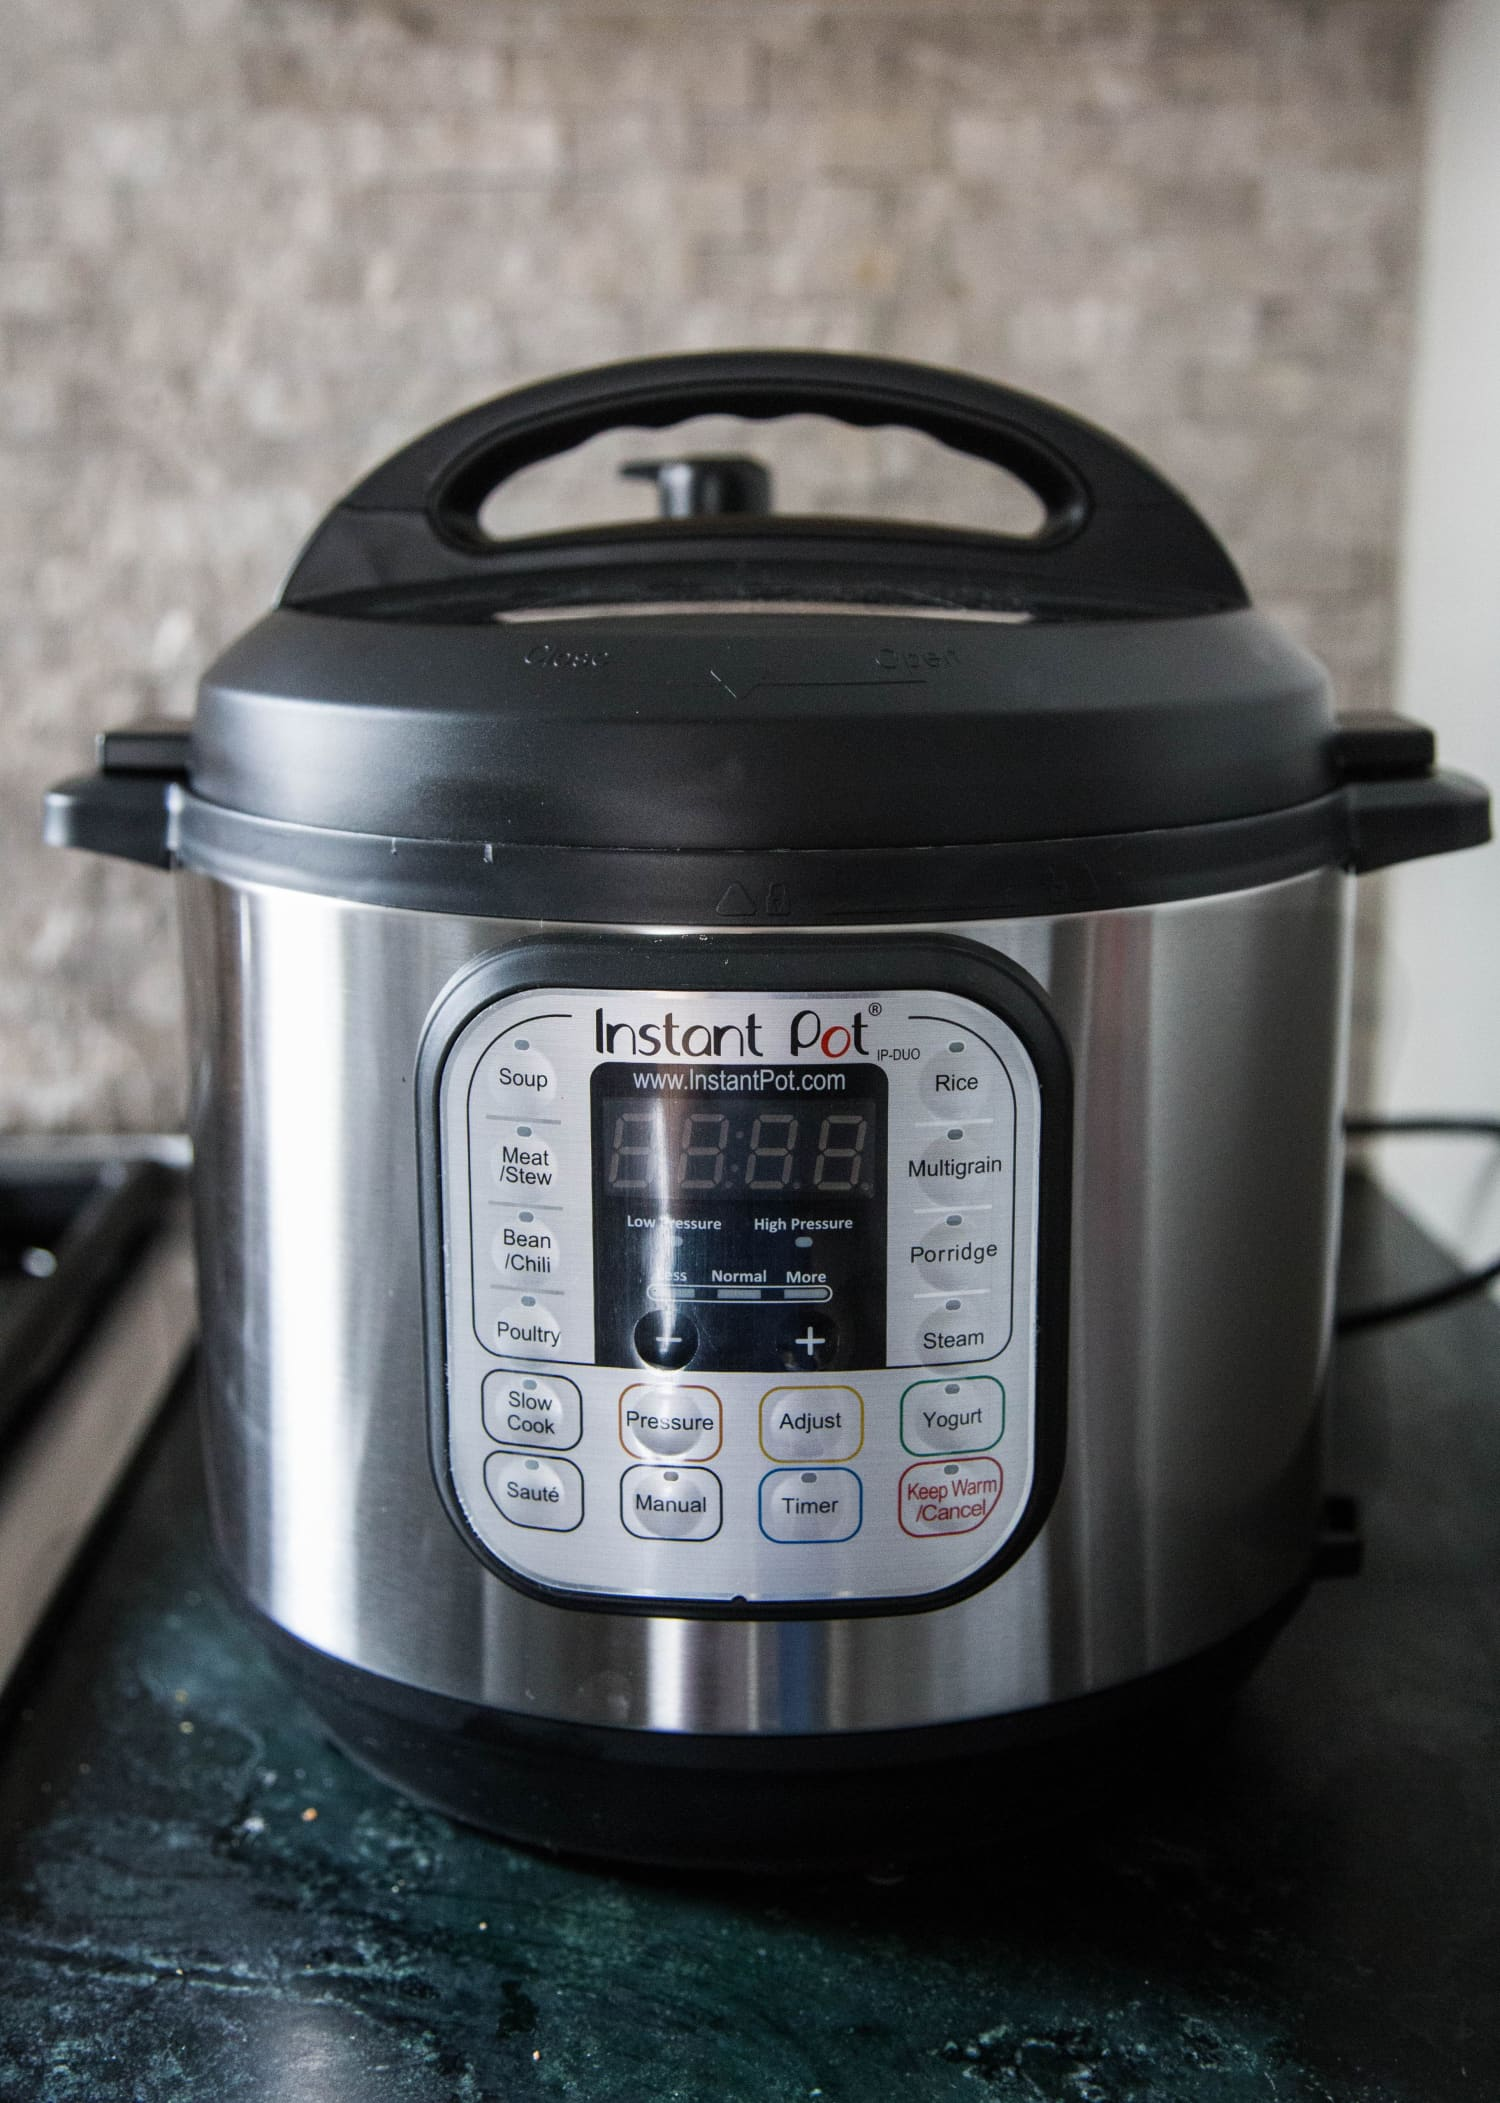 The Instant Pot Is One Machine That Does The Work Of 7